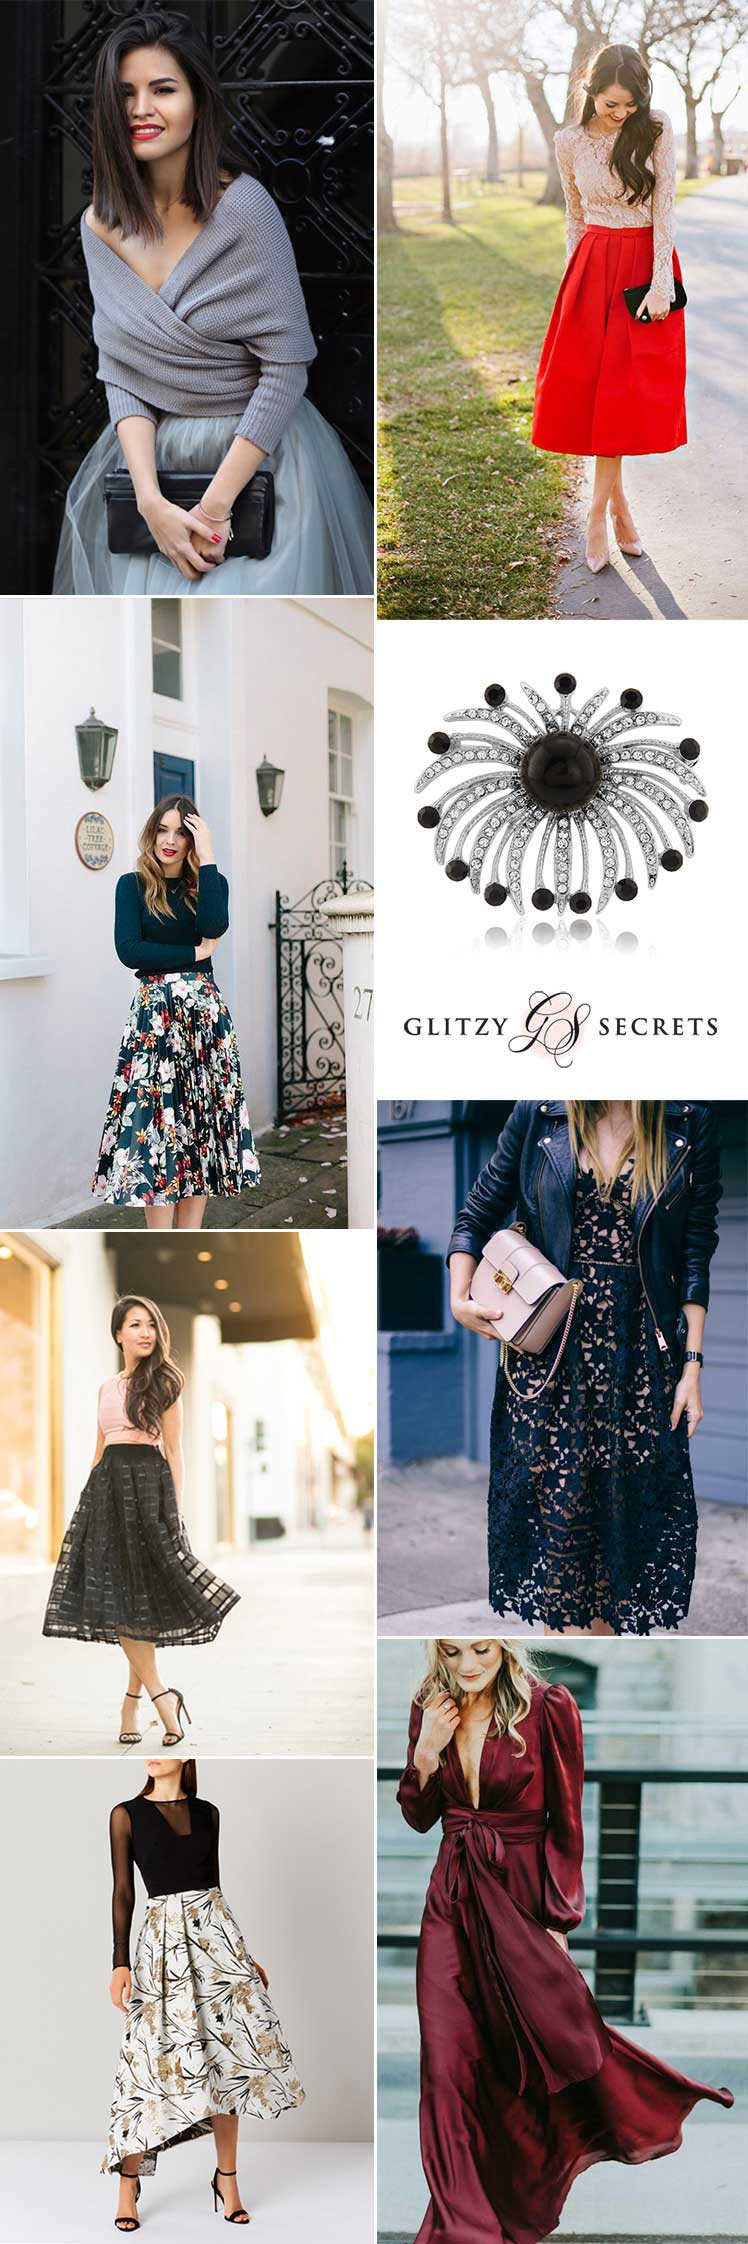 33aedc24107 Winter Wedding Guest Outfit Ideas   Tips - Glitzy Secrets